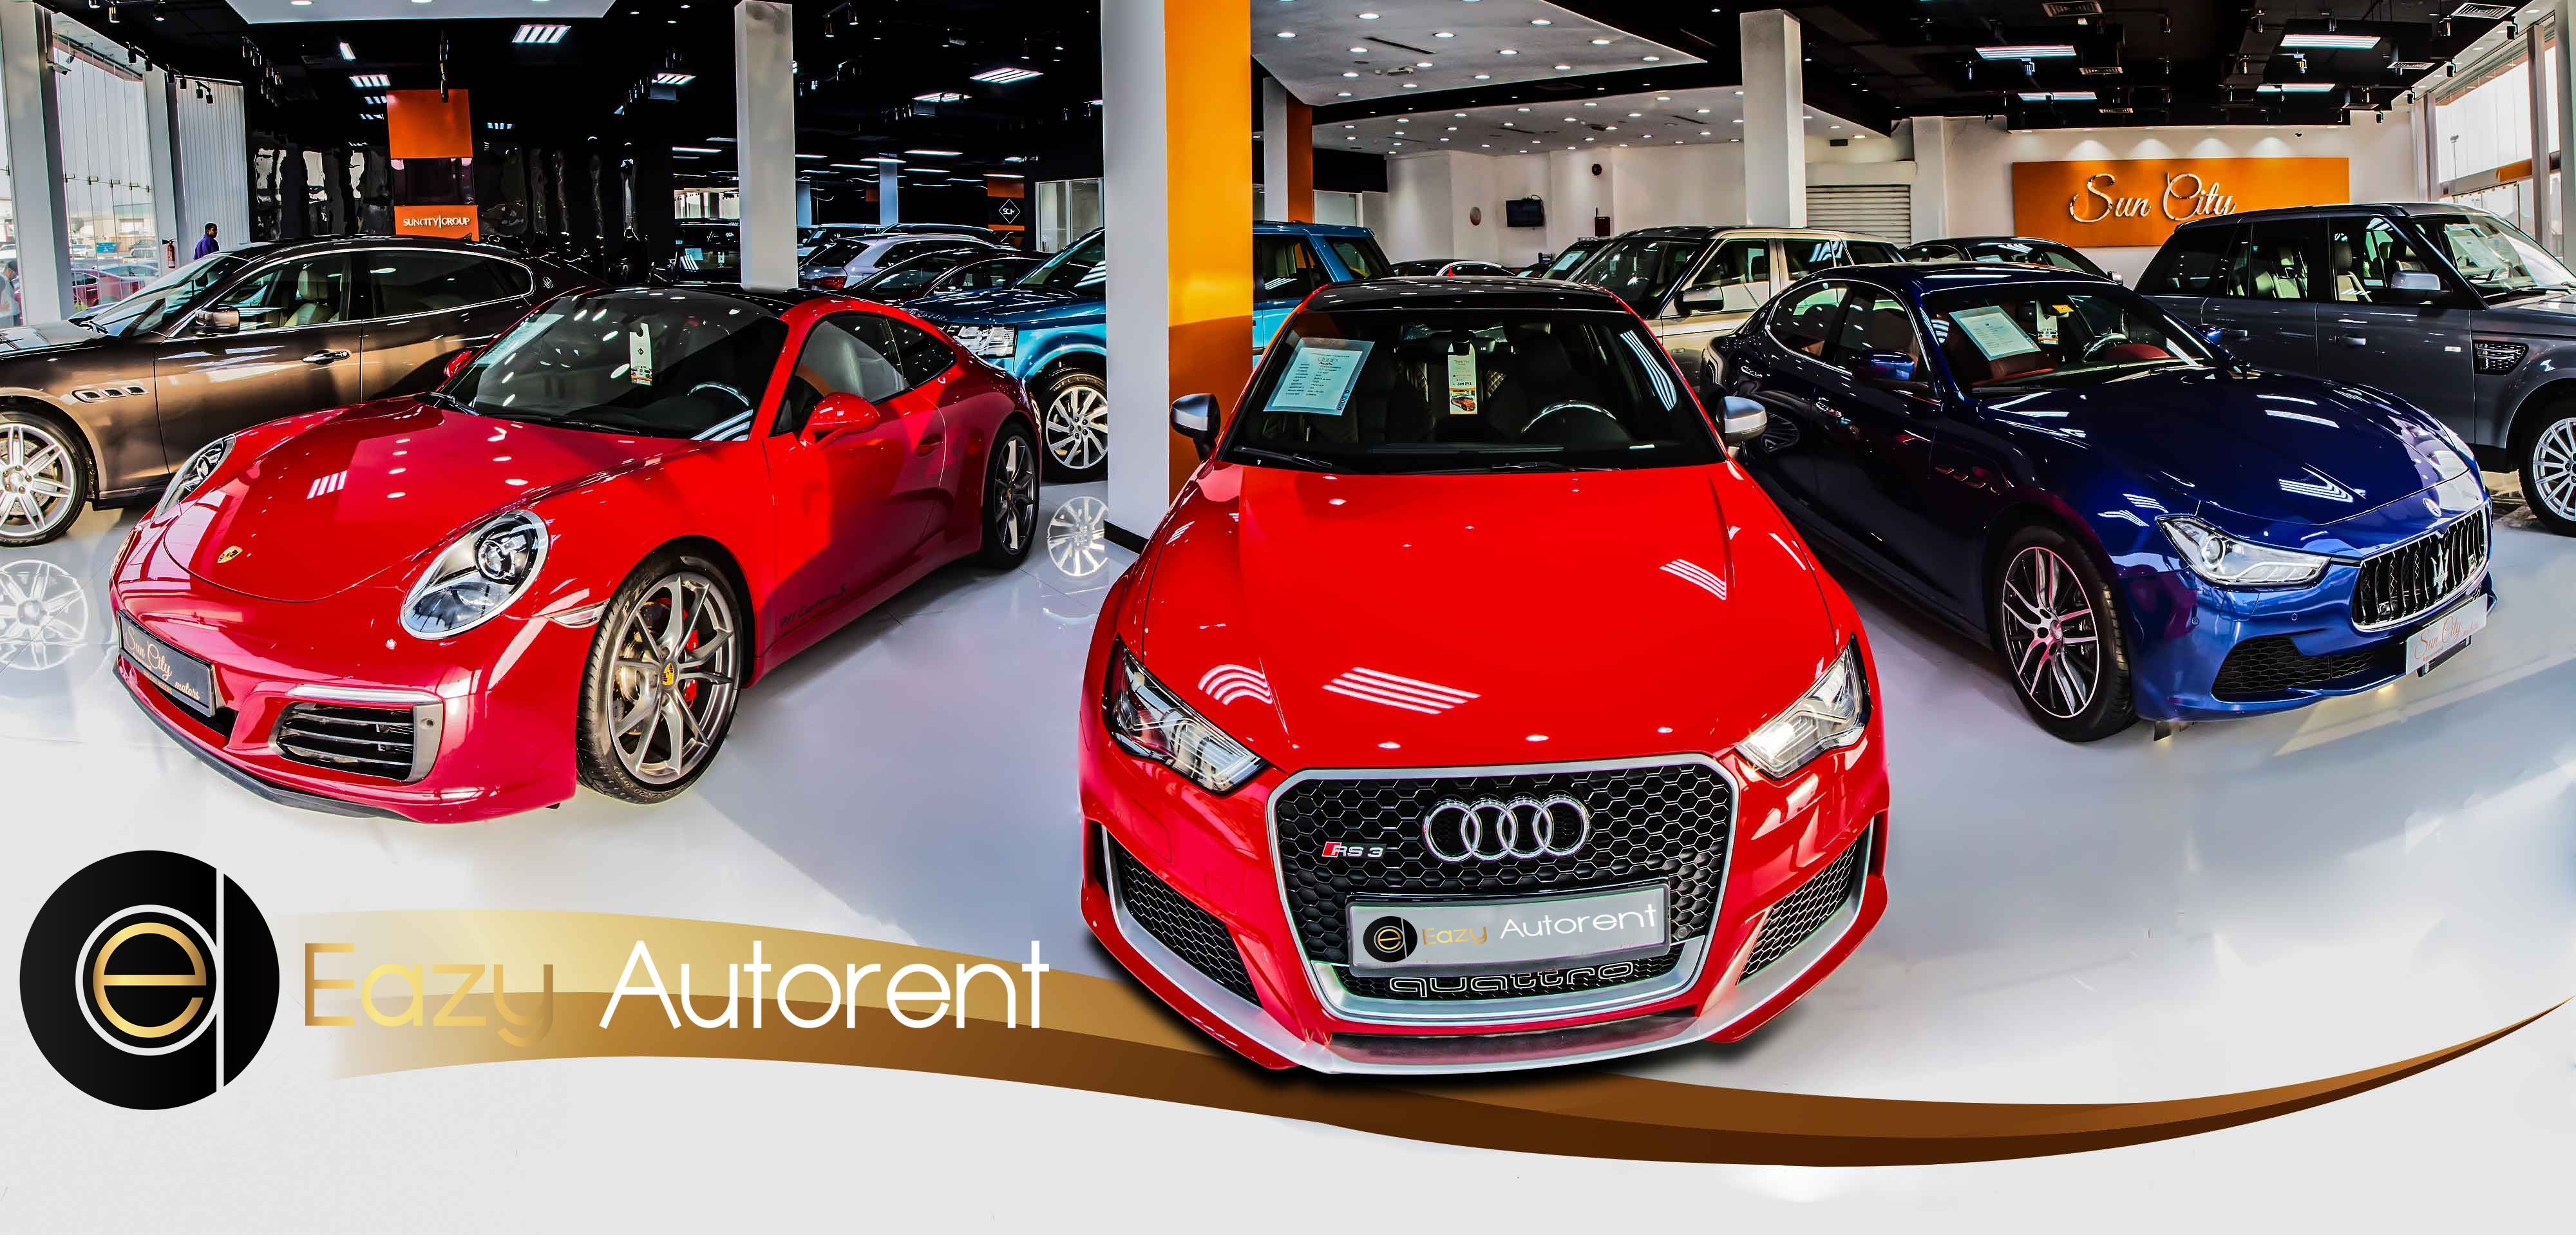 Best And Cheap Car Rental Services Uk Eazy Autorent Car Rental Car Rental Service Luxury Car Rental